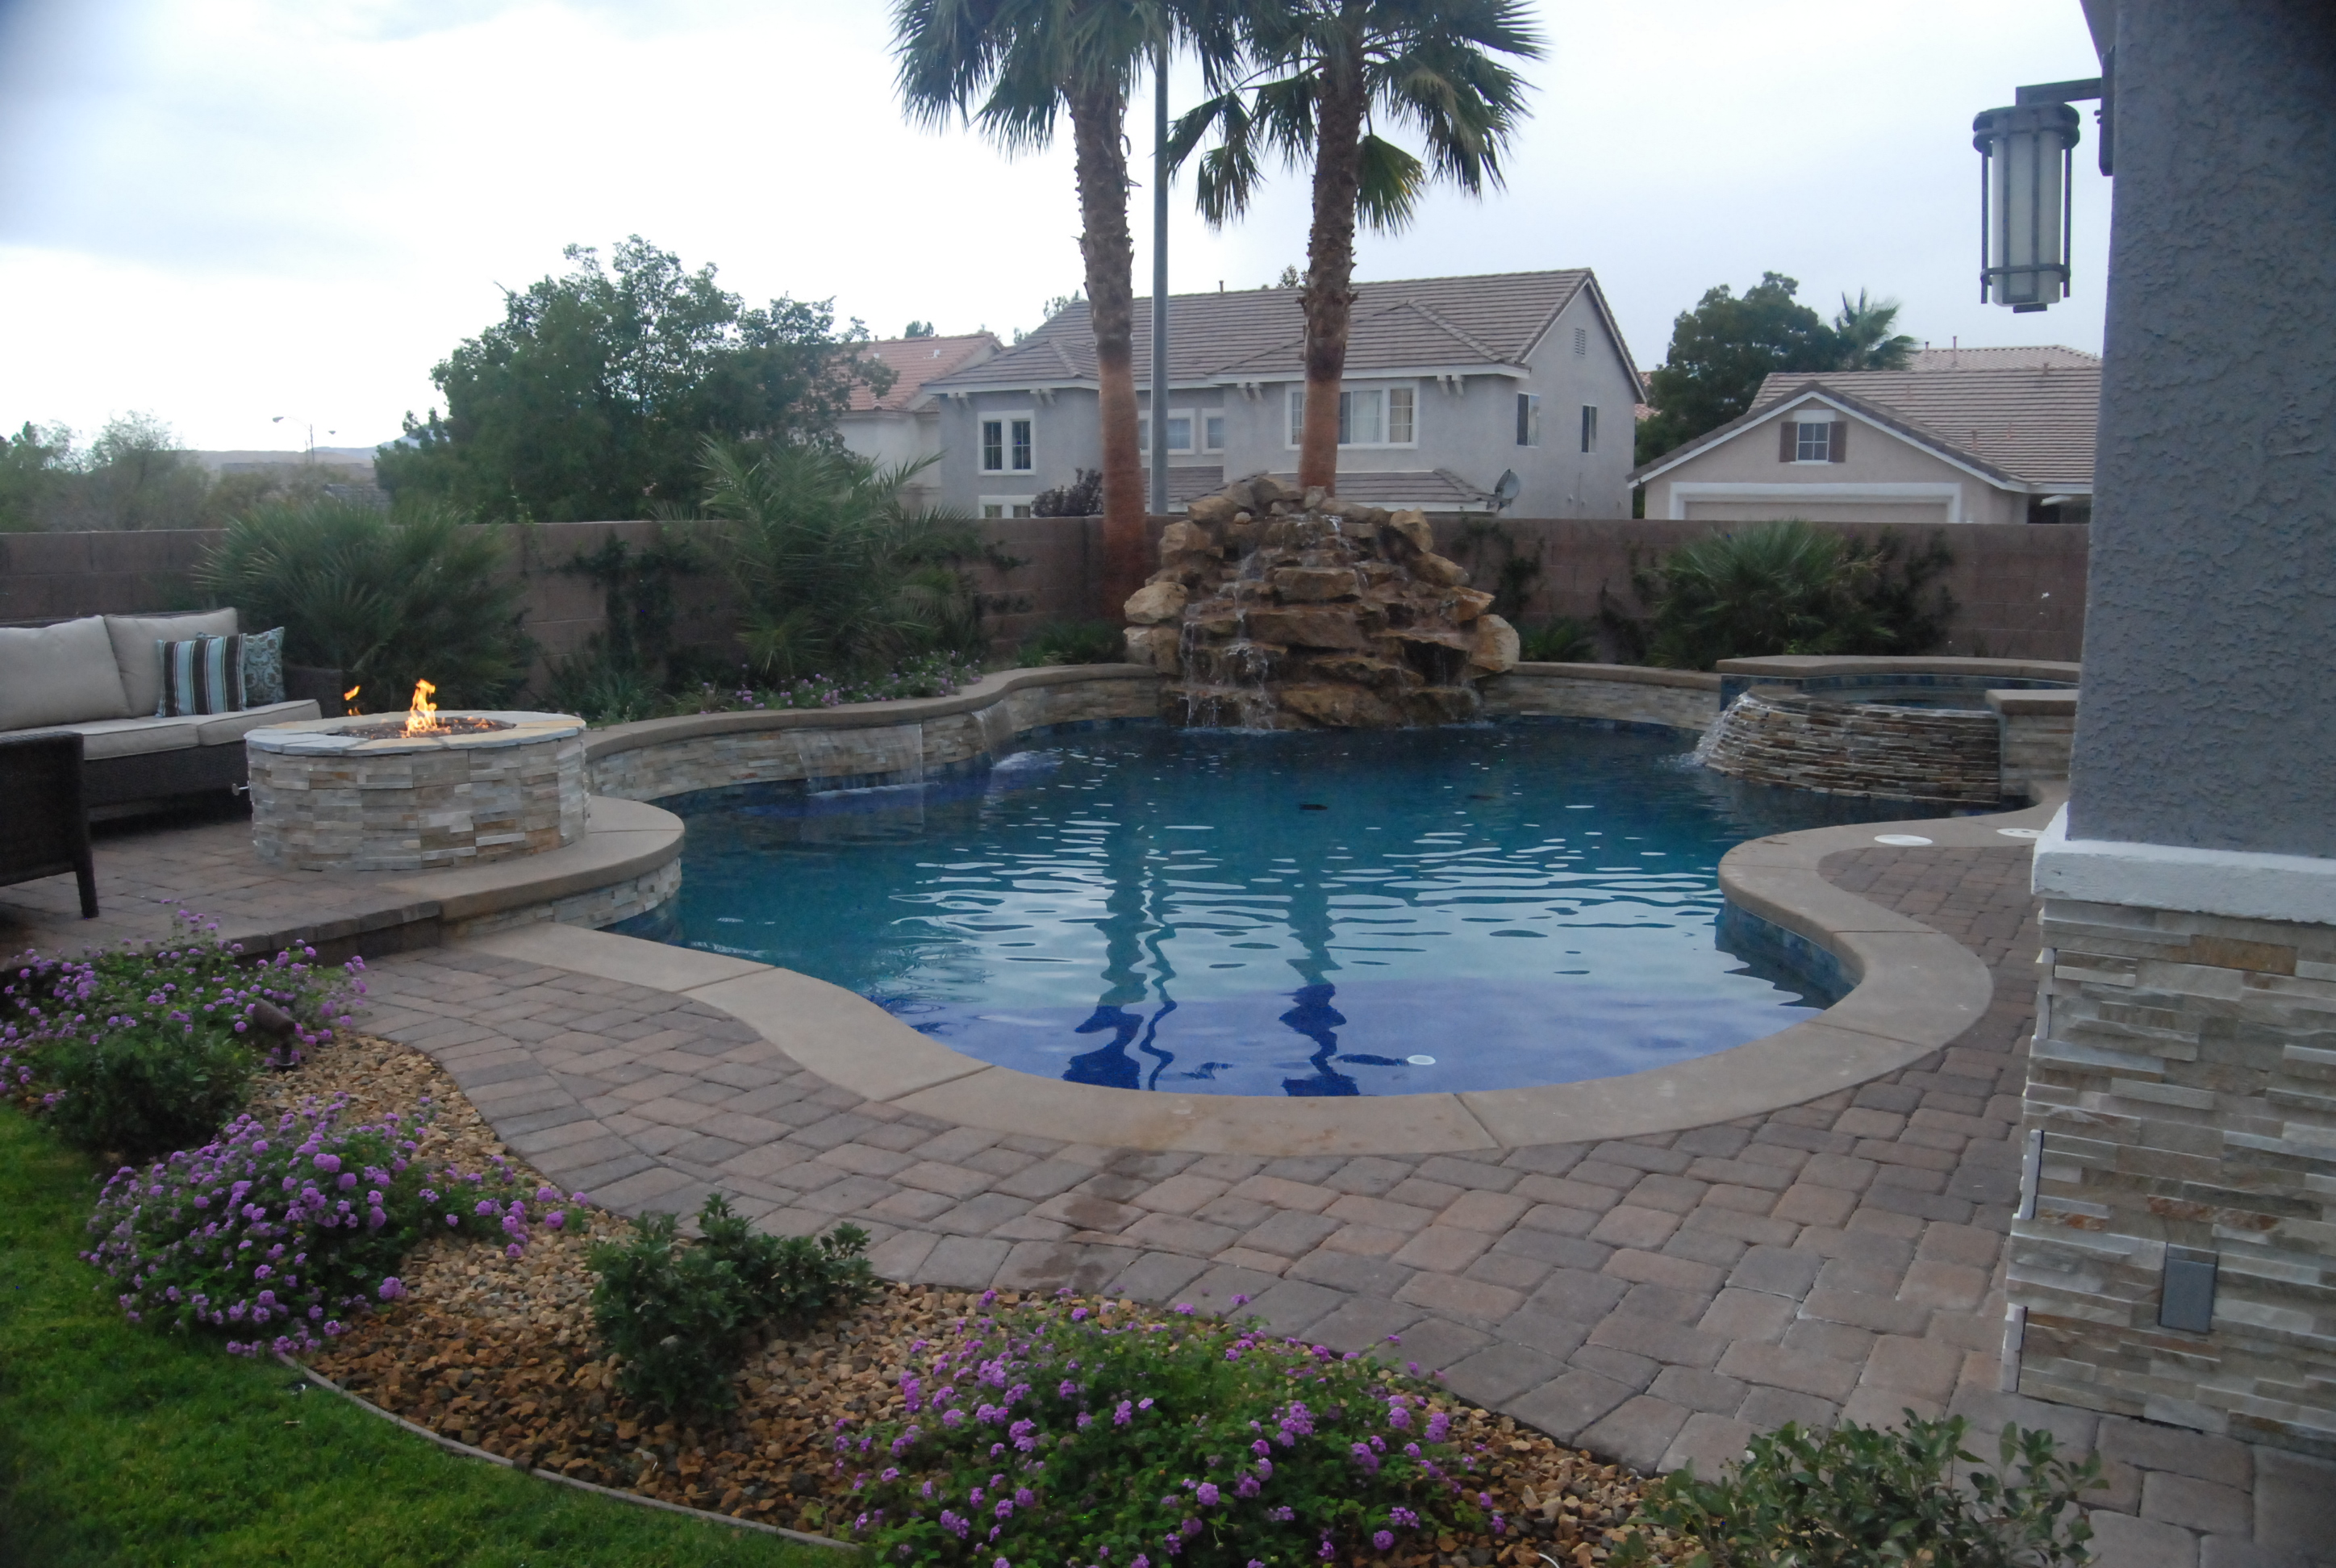 Does your backyard exceed your expectations? - Las Vegas ...